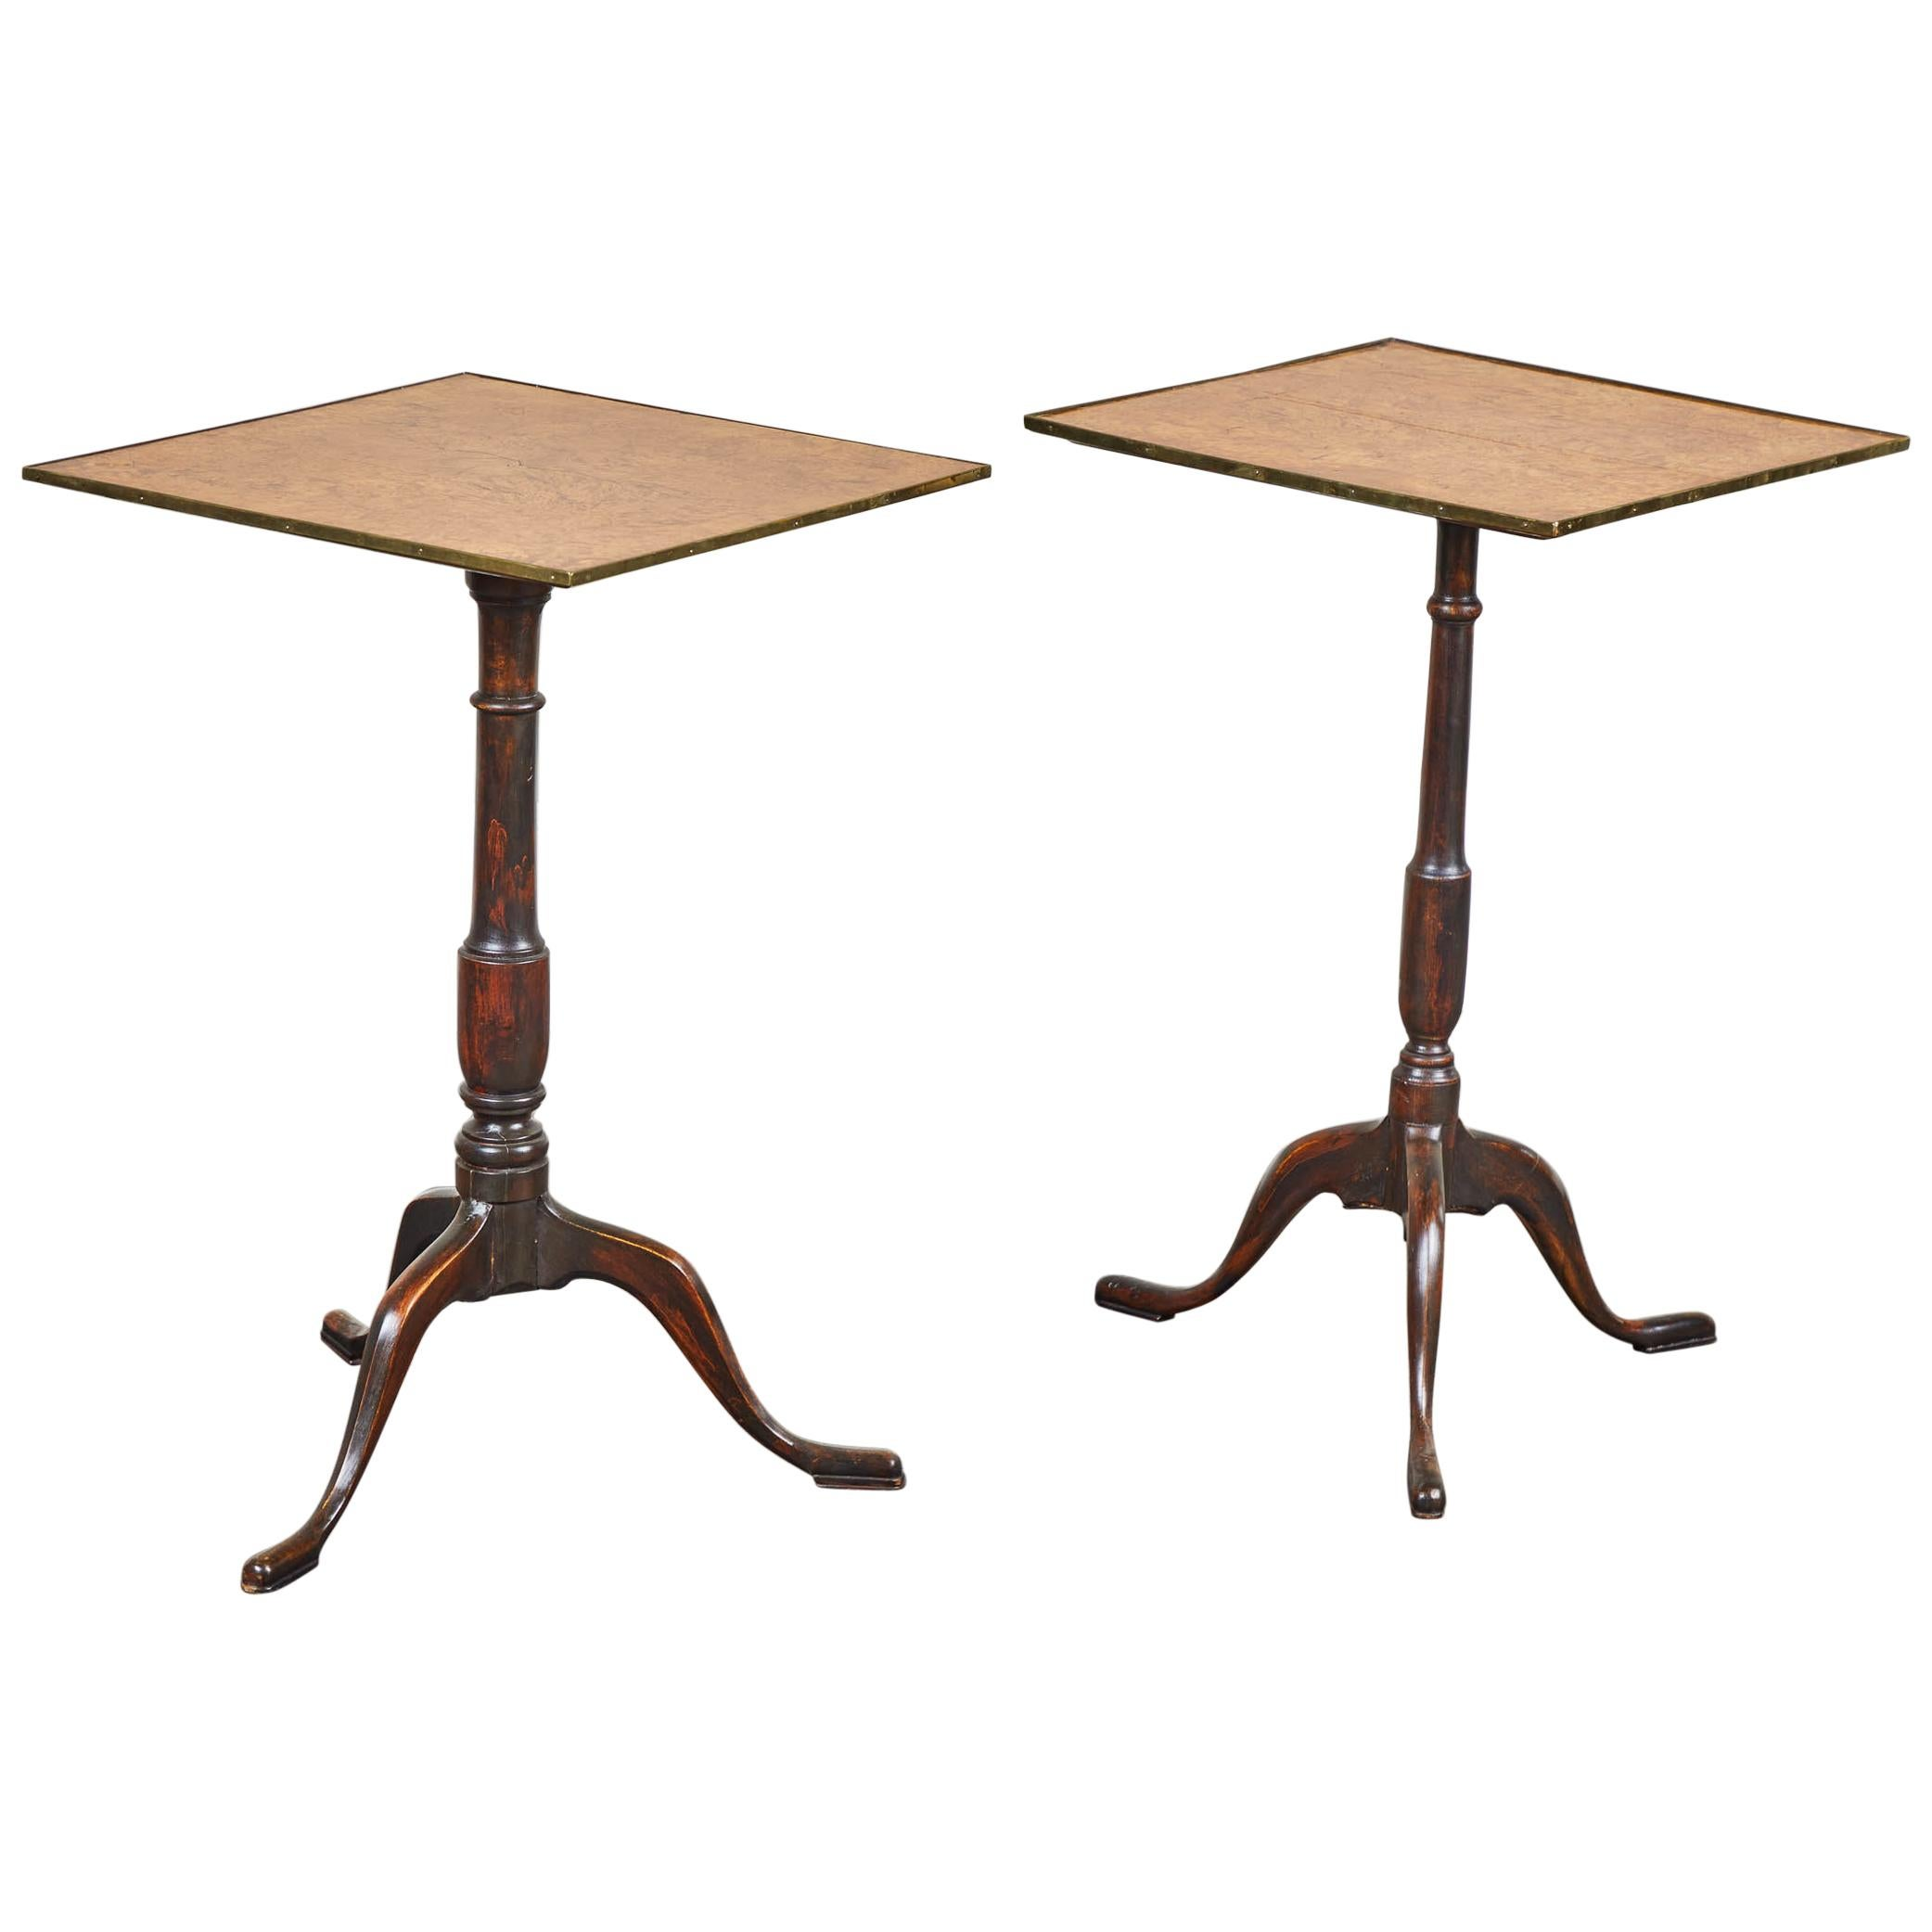 Pair of Early 19th Century Swedish Pedestal Tilt-Top Tables